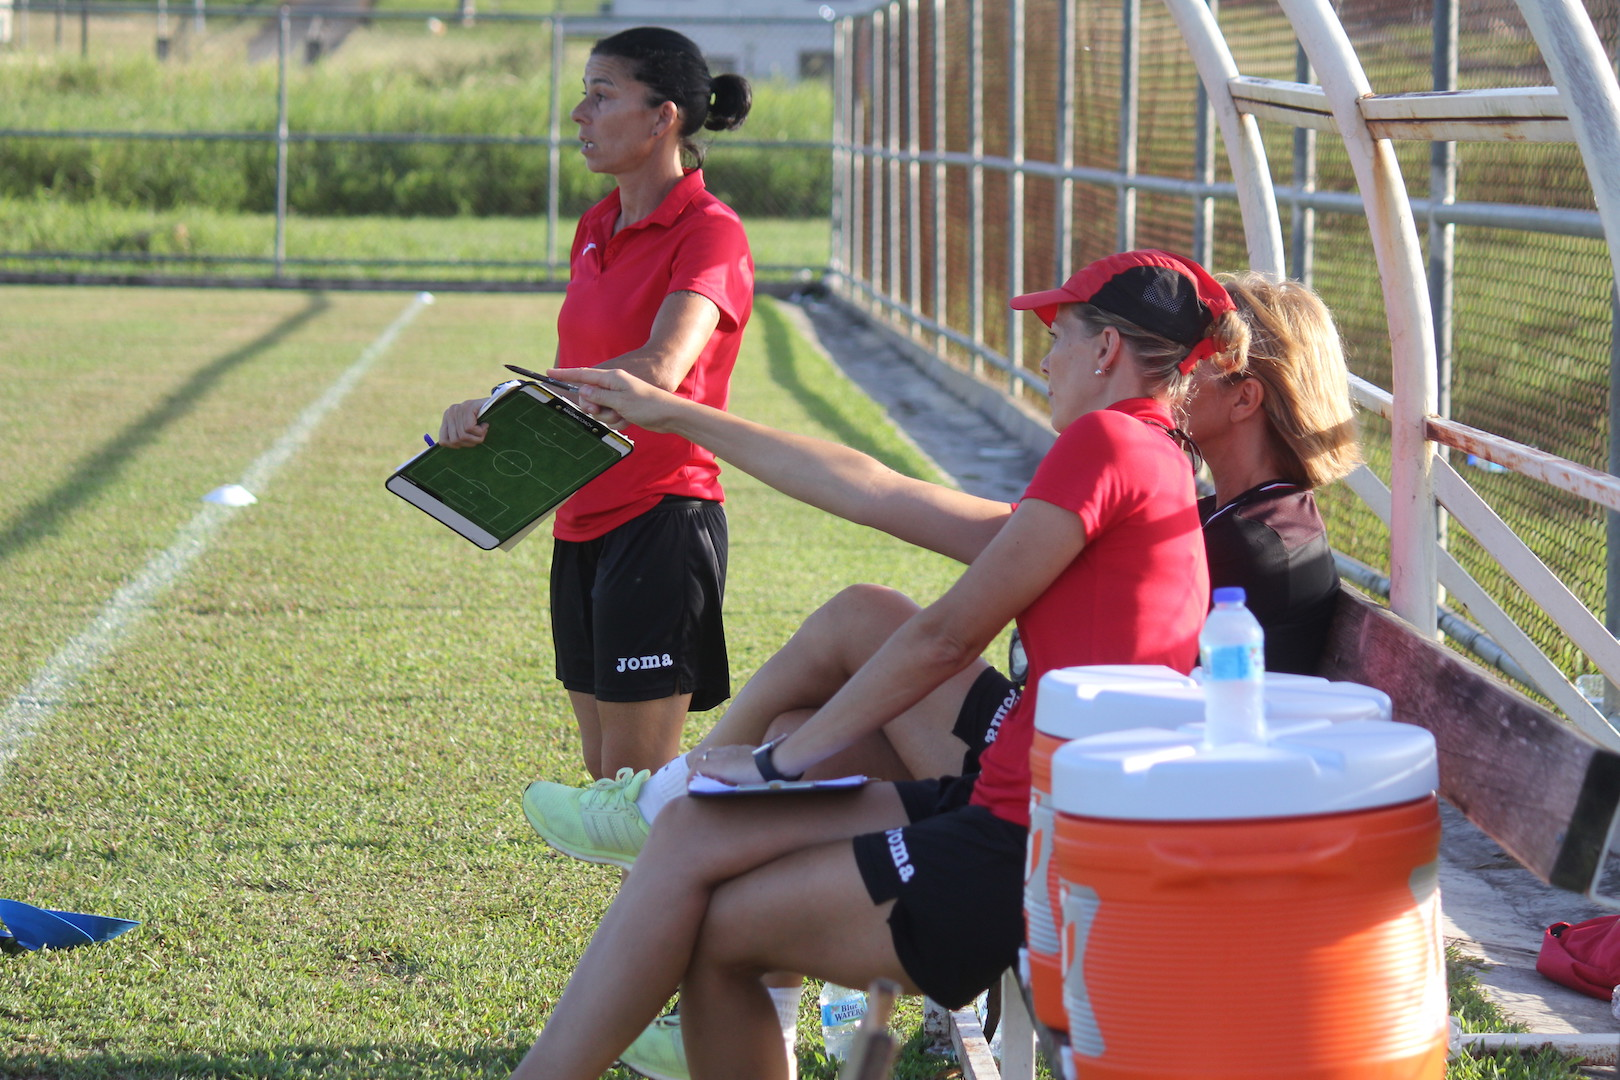 Nicola Williams points out an observation to Carolina Morace and Manuela Tesse during U-17 trials on Saturday.